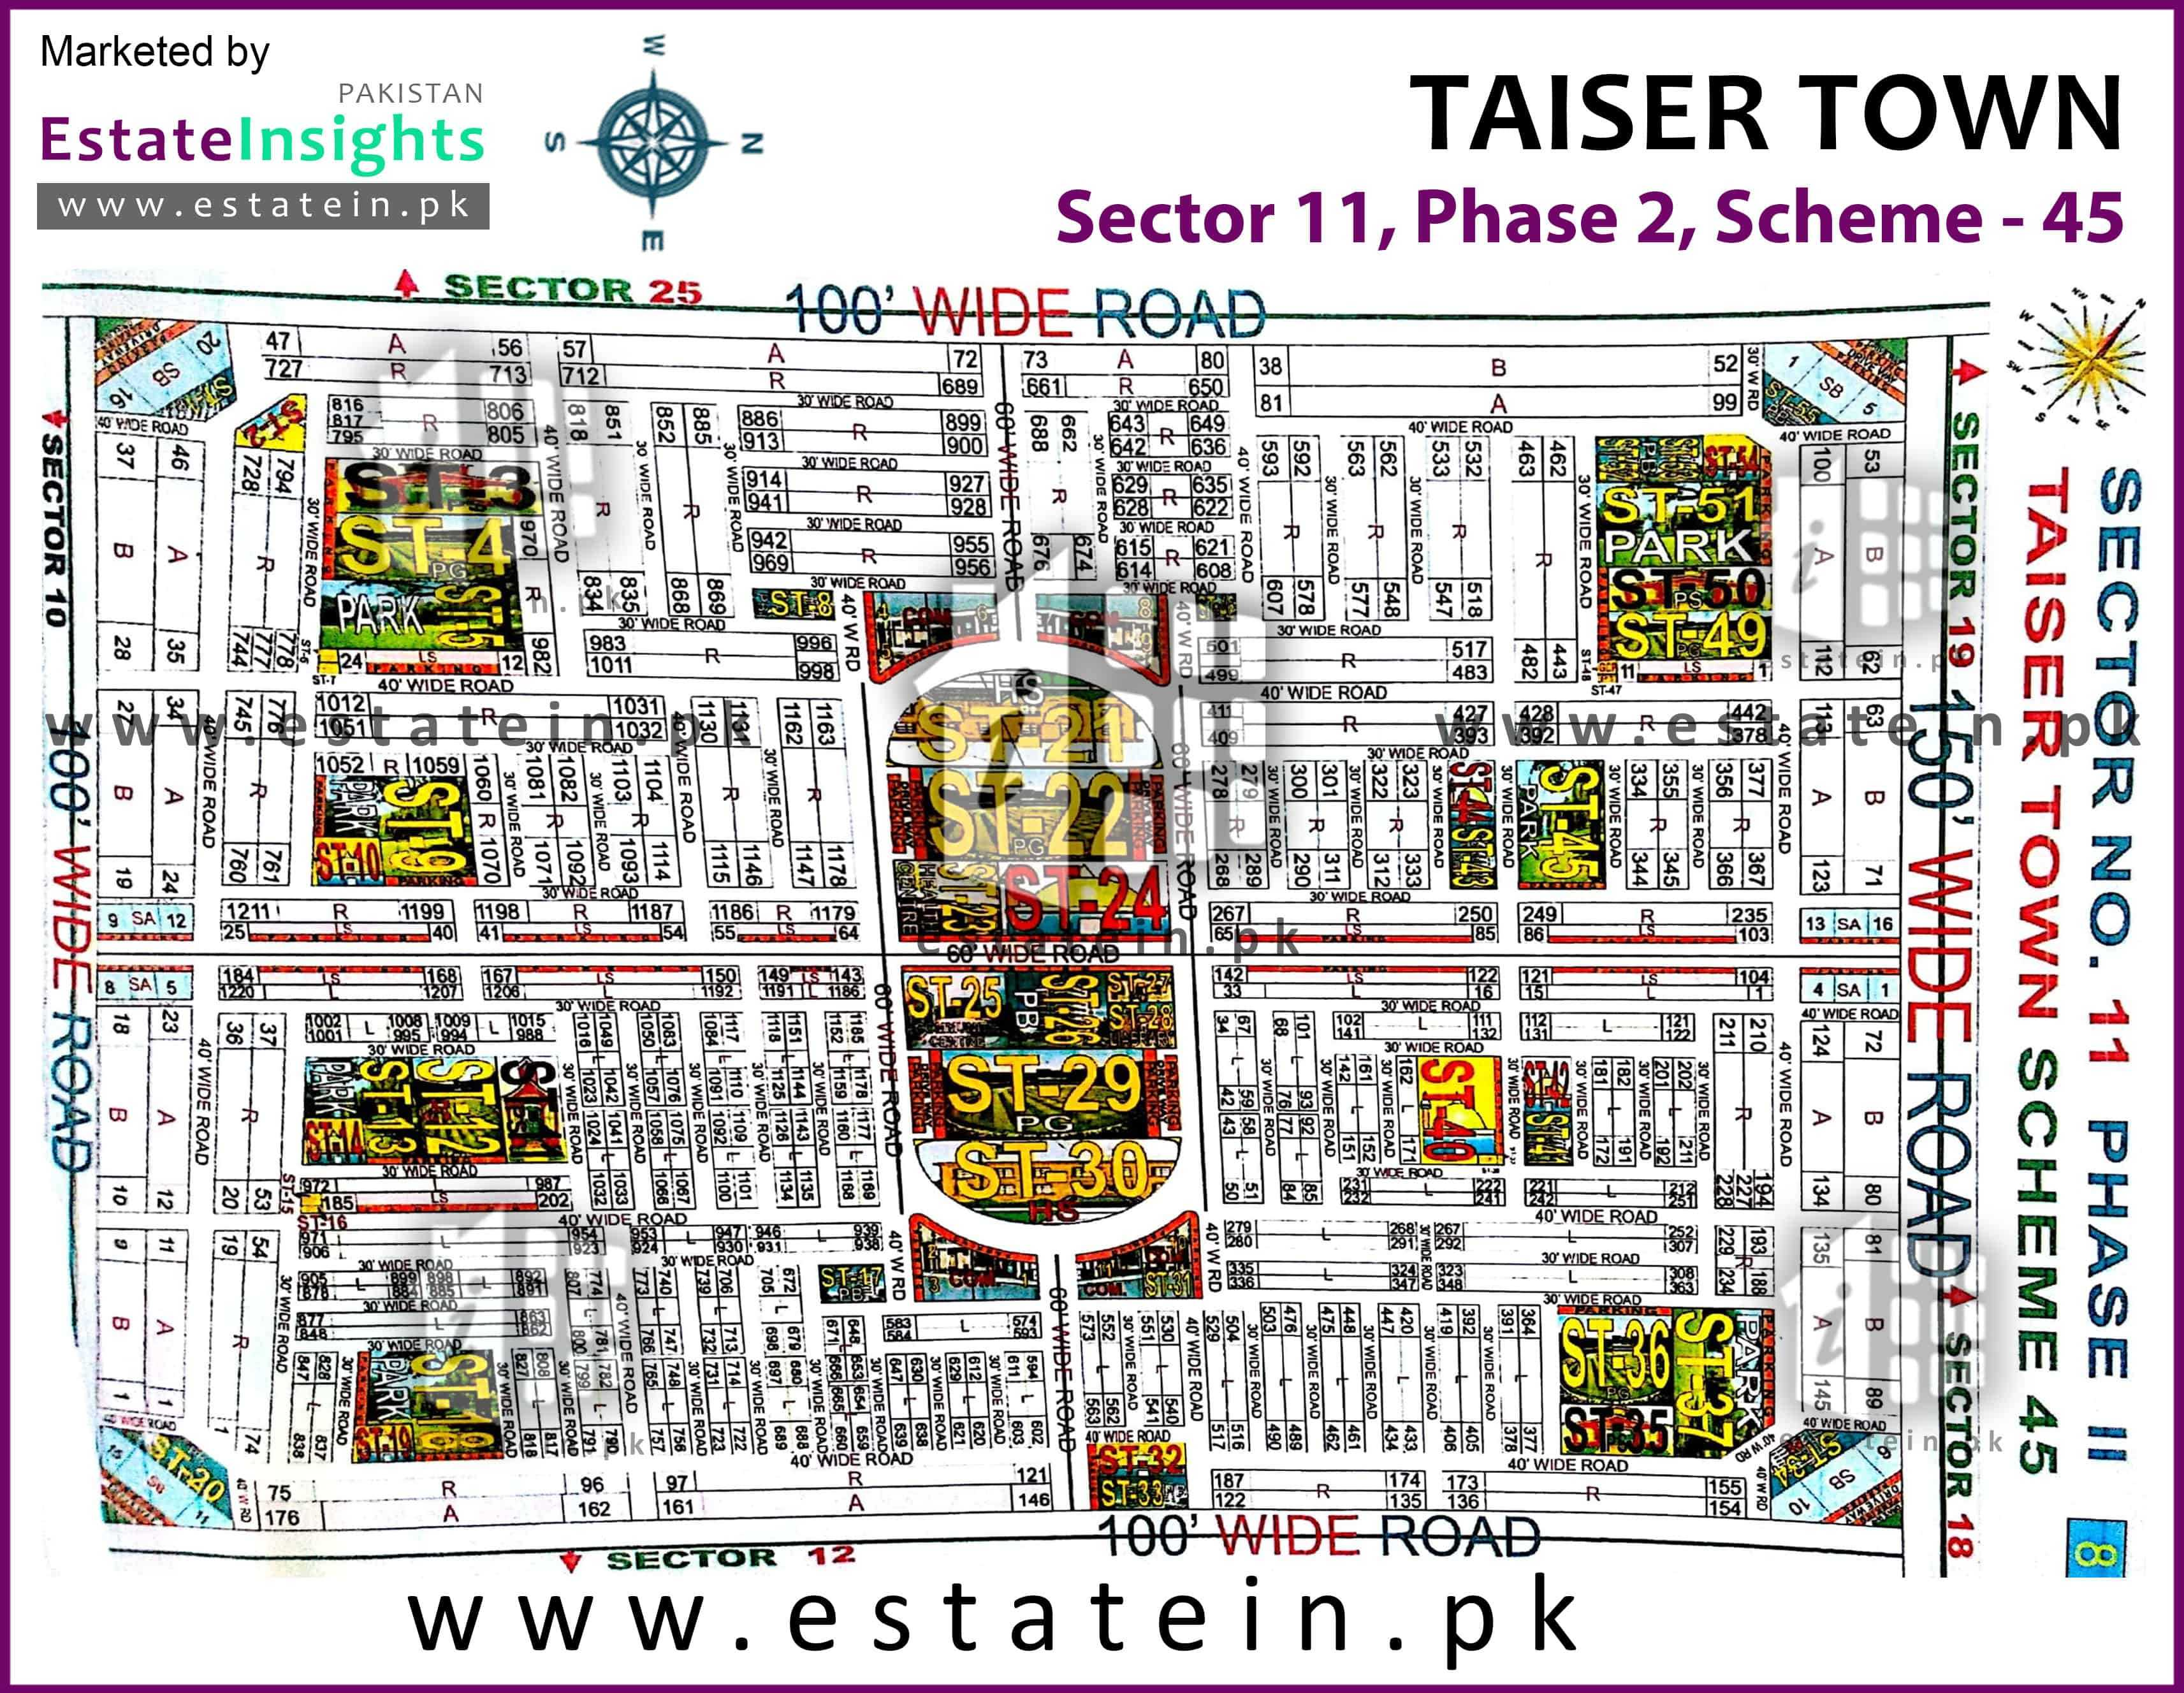 Site Plan of Sector 11 of Taiser Town Phase II